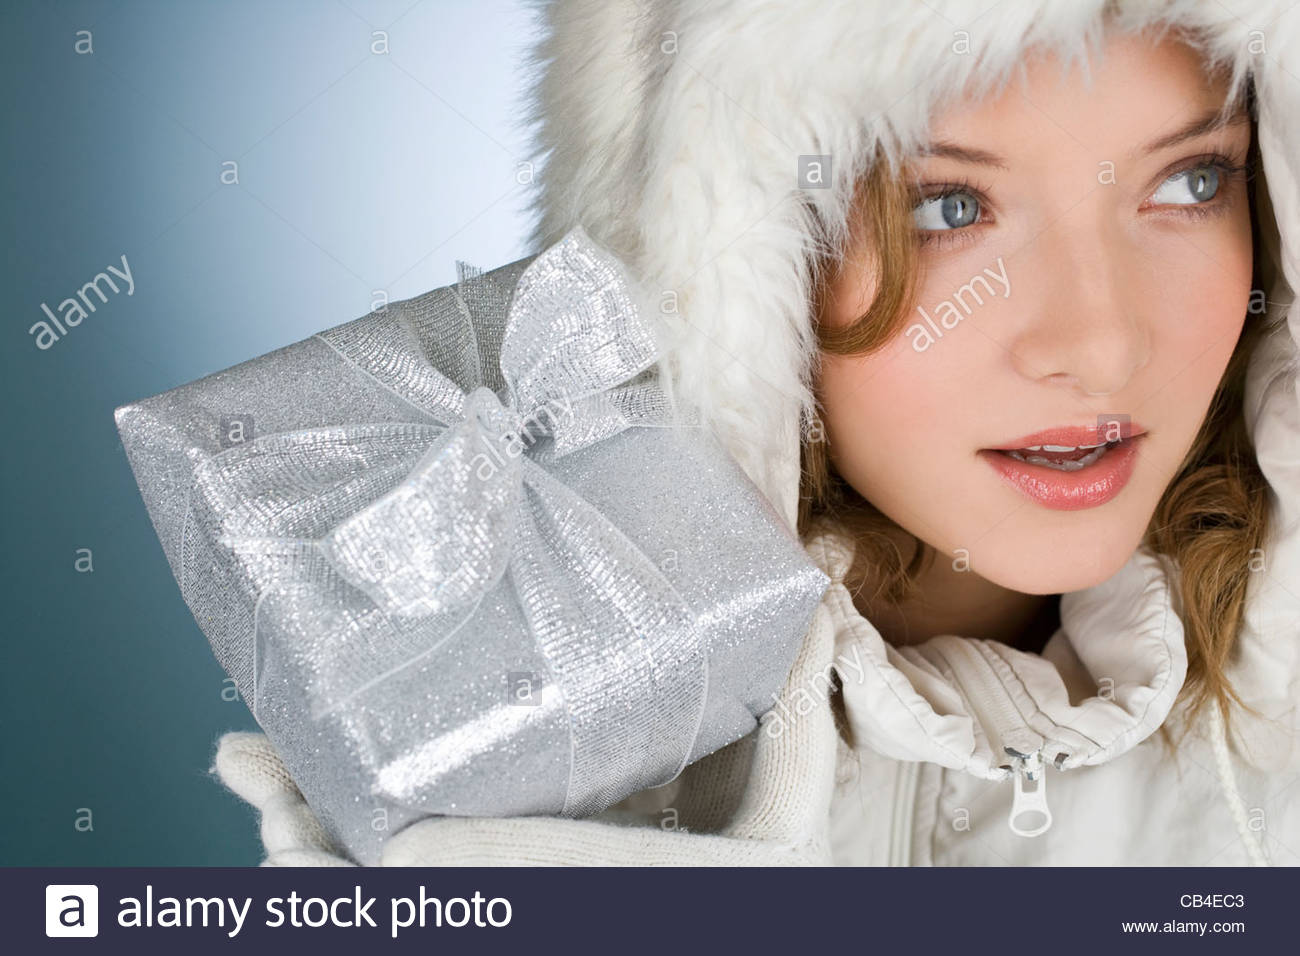 A young woman wearing a winter coat, holding a Christmas present - Stock Image